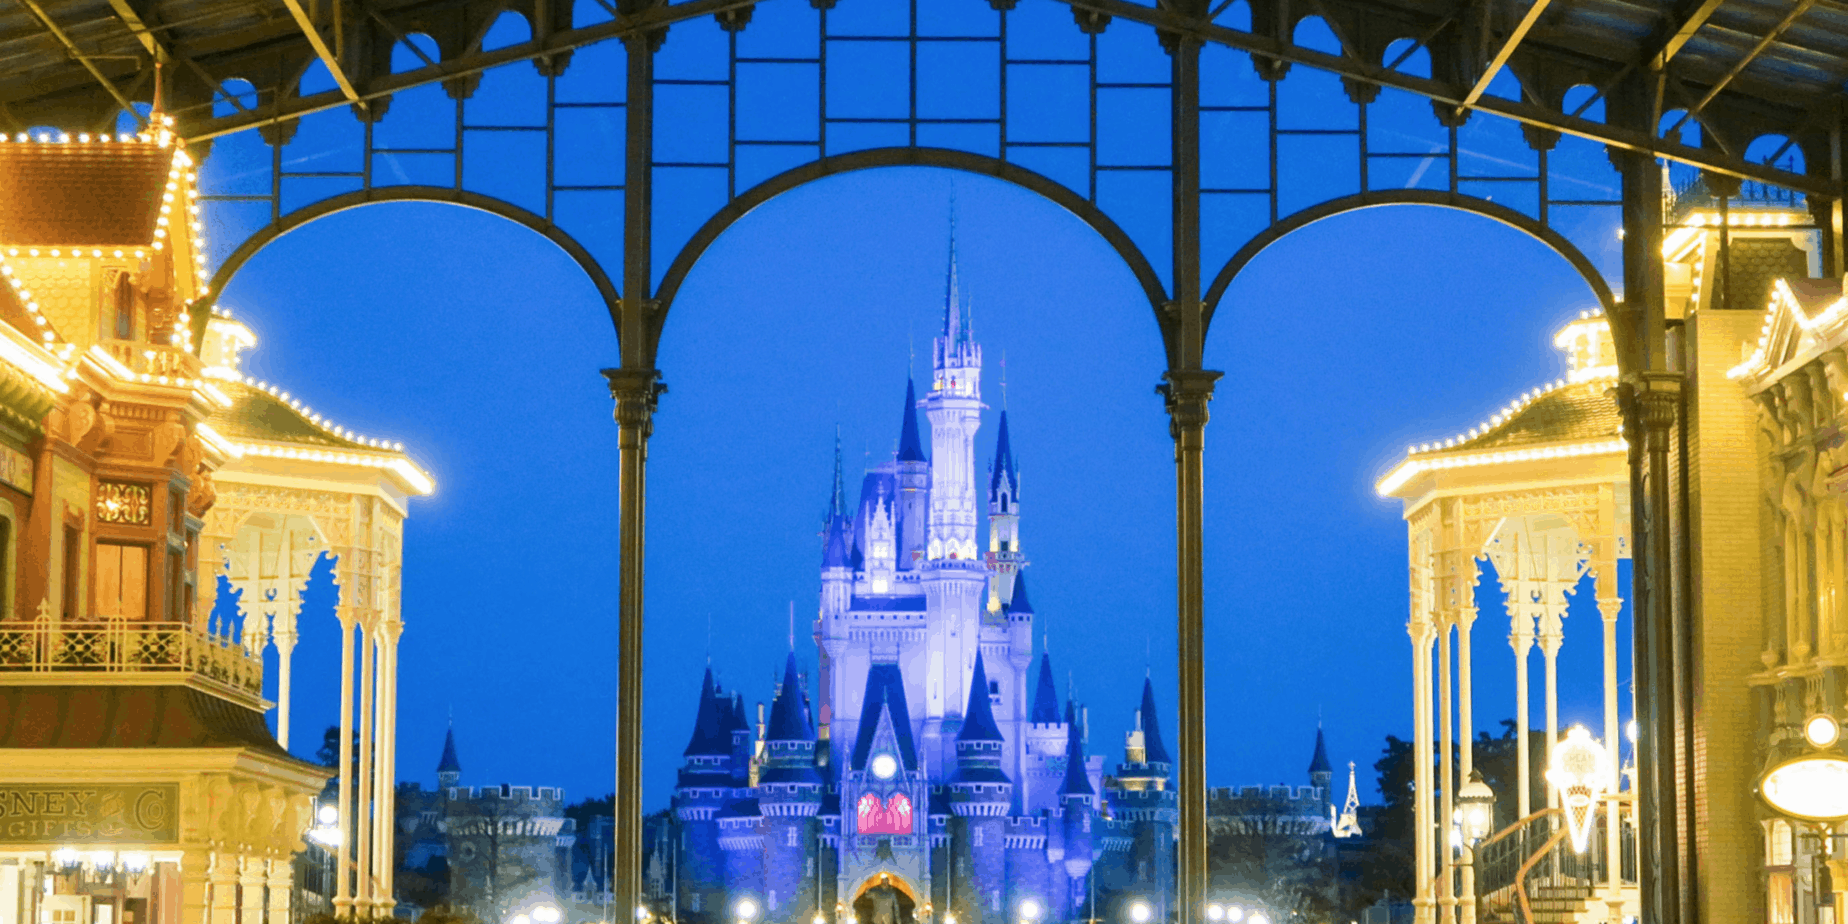 Our Best Tokyo Disneyland Trip Planning Articles